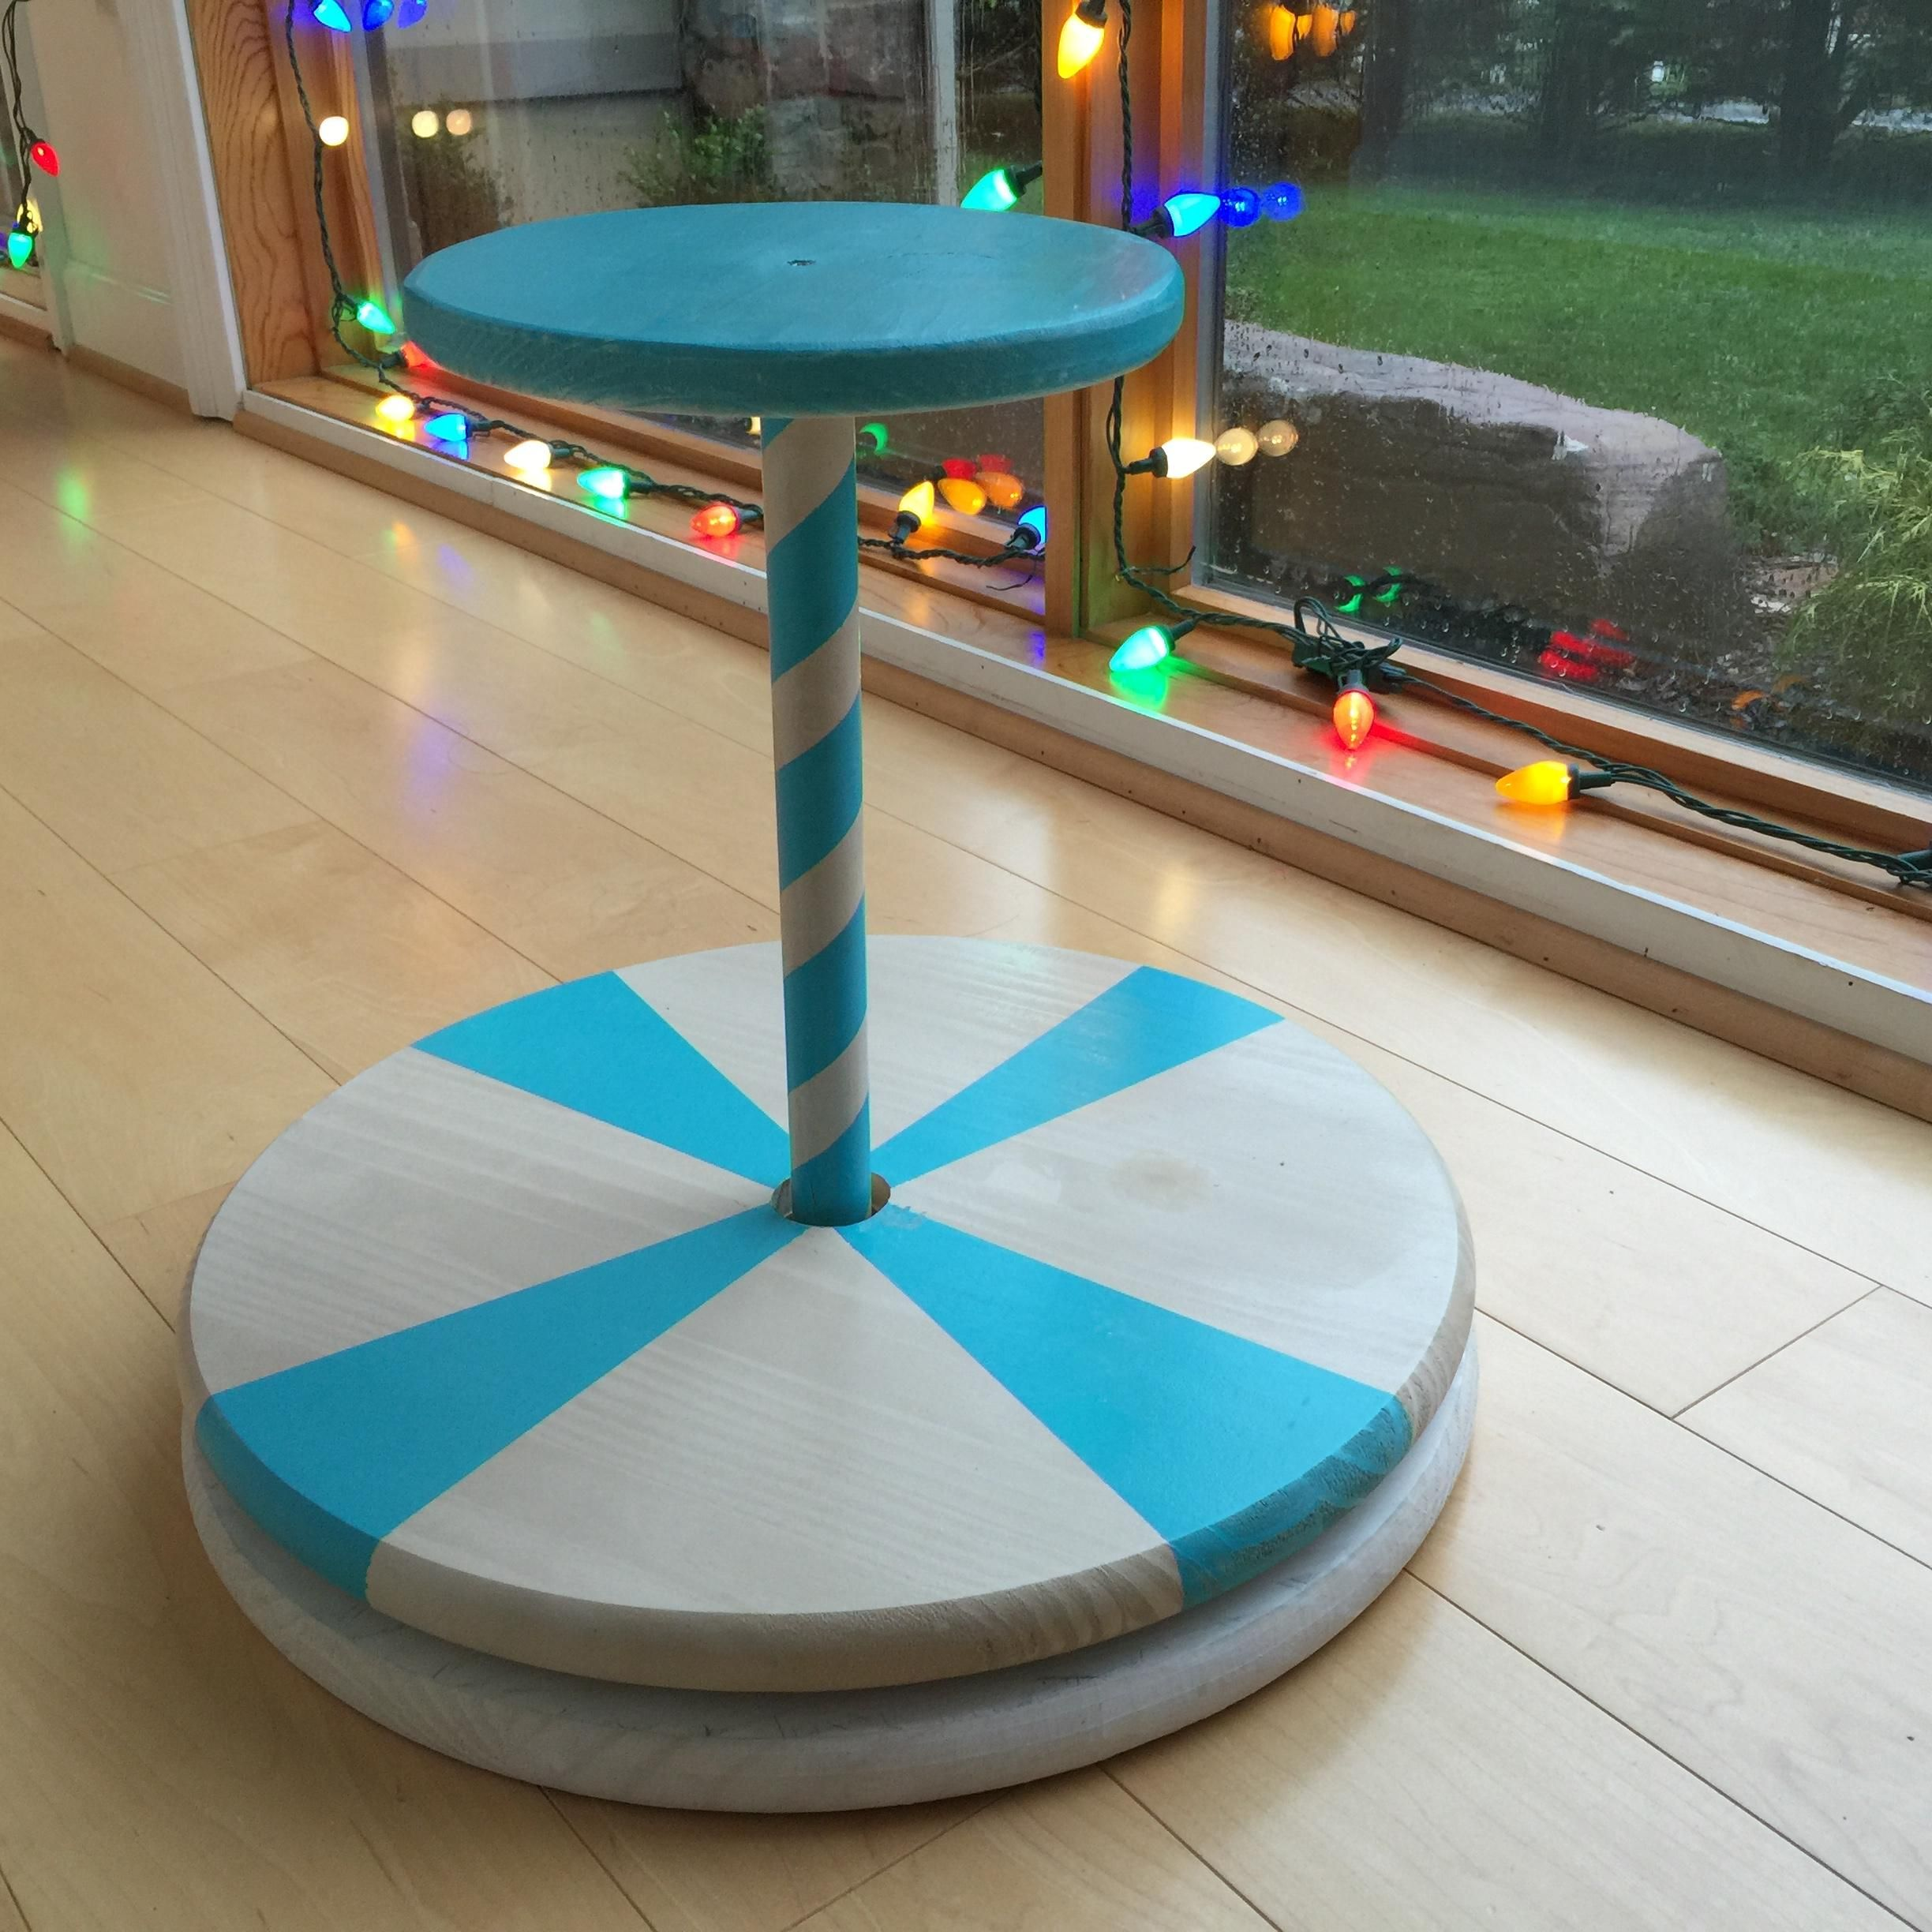 DIY Adult Sit 'n Spin Diy adult, Diy yard games, Gifts